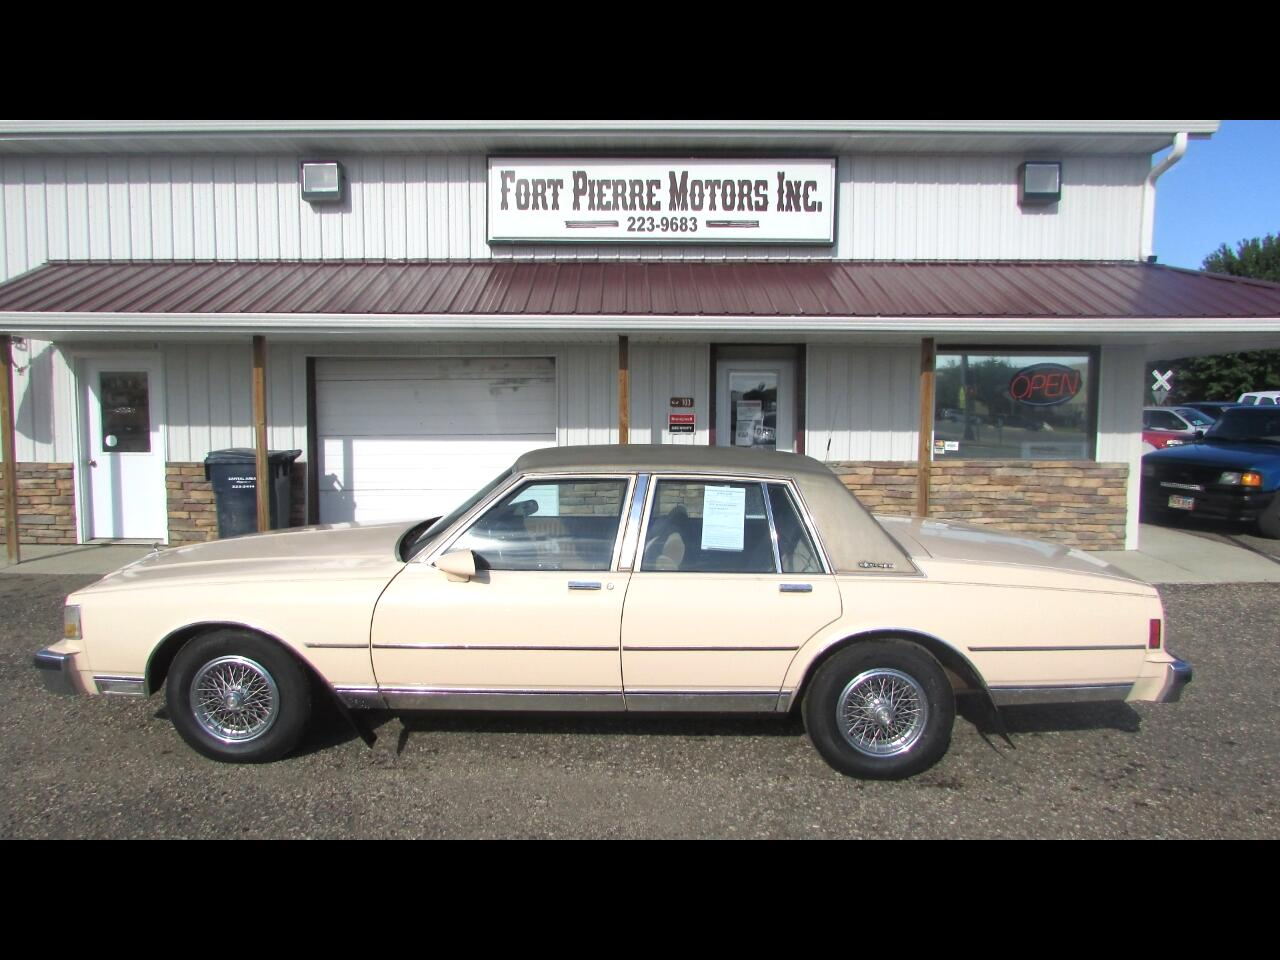 Used Chevrolet Caprice for Sale in Colorado Springs, CO: 63